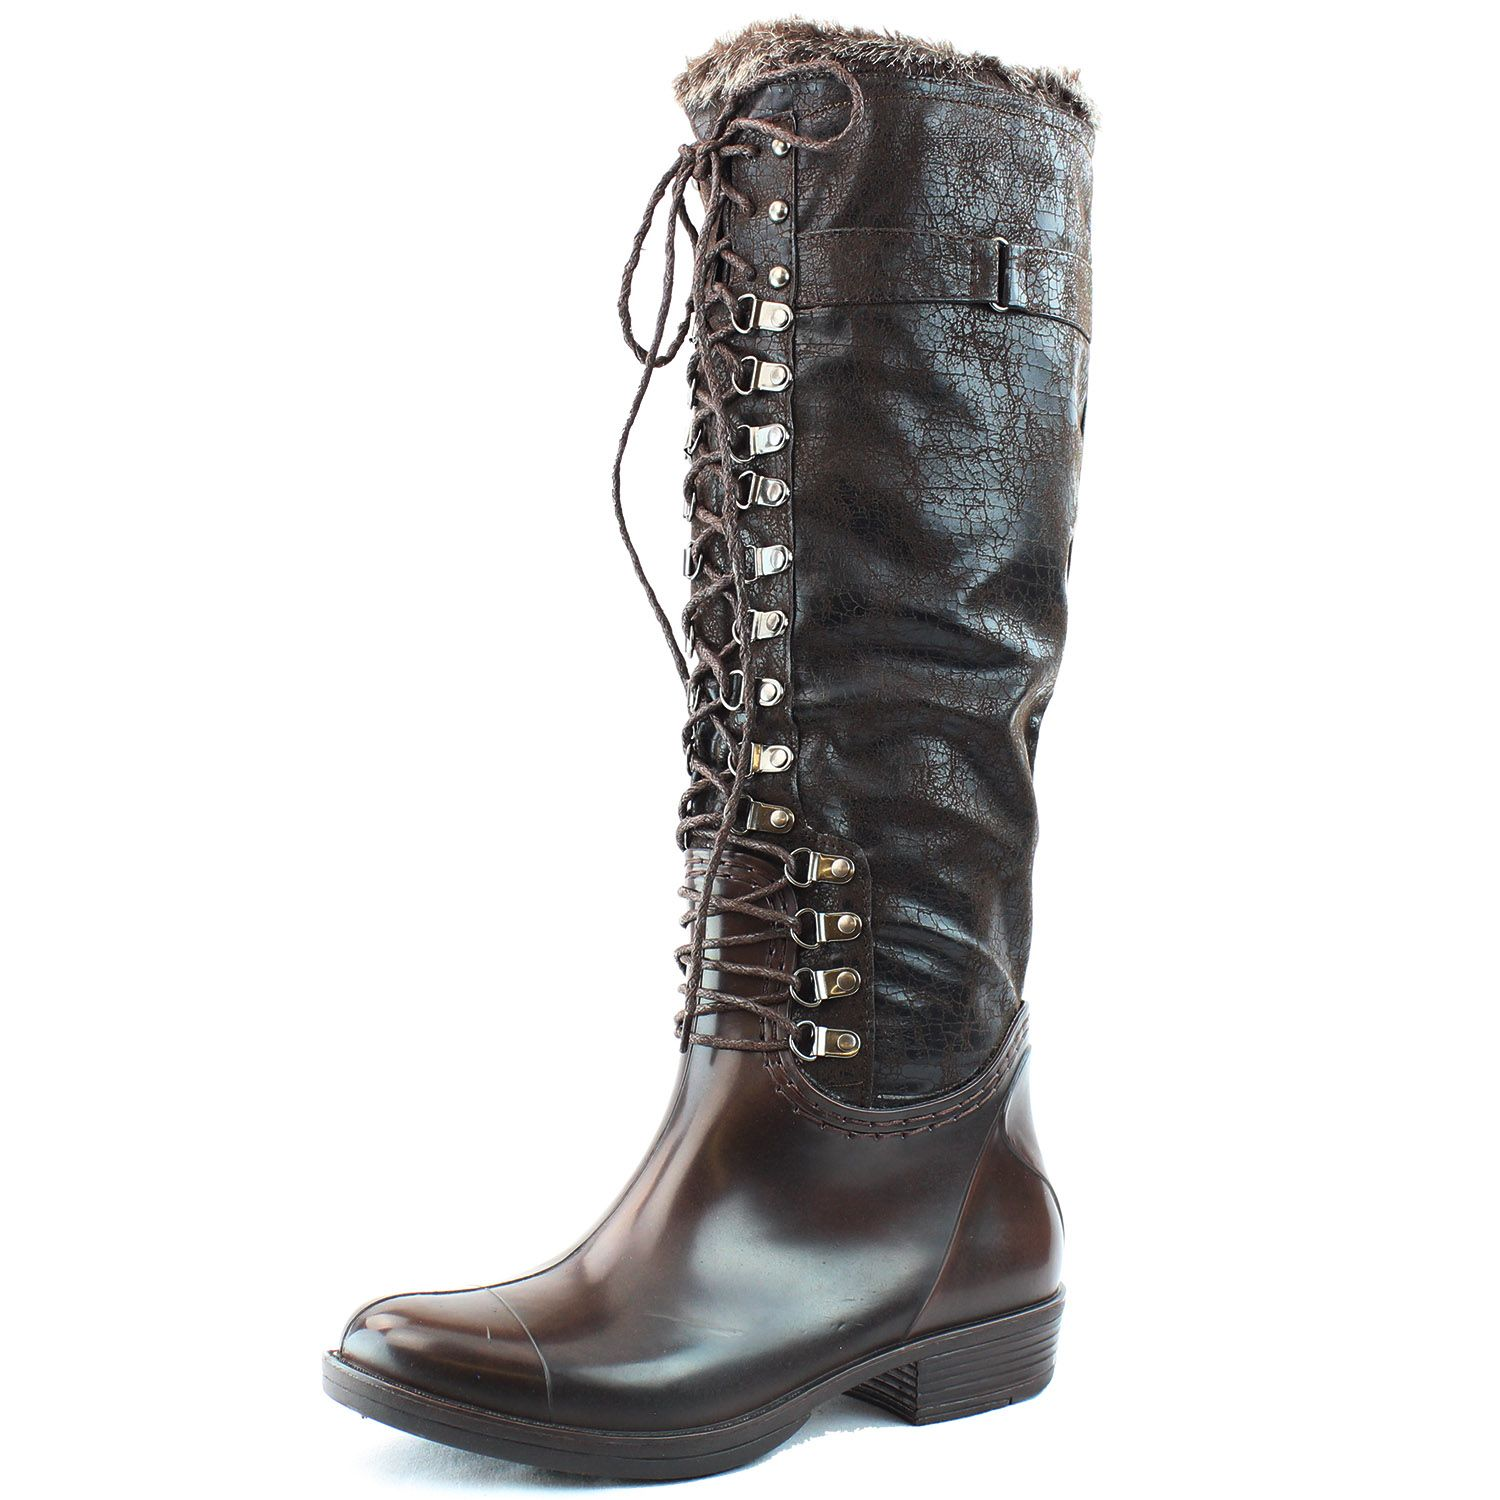 Save 10% + Free Shipping Offer * | Coupon Code: Pinterest10 Material: Man Made Faux Fur Brand: Nature Breeze Collection Product Code: Echo-02 Brown Women's Nature Breeze Echo-02 Brown Lace Up Snow Rain Boots